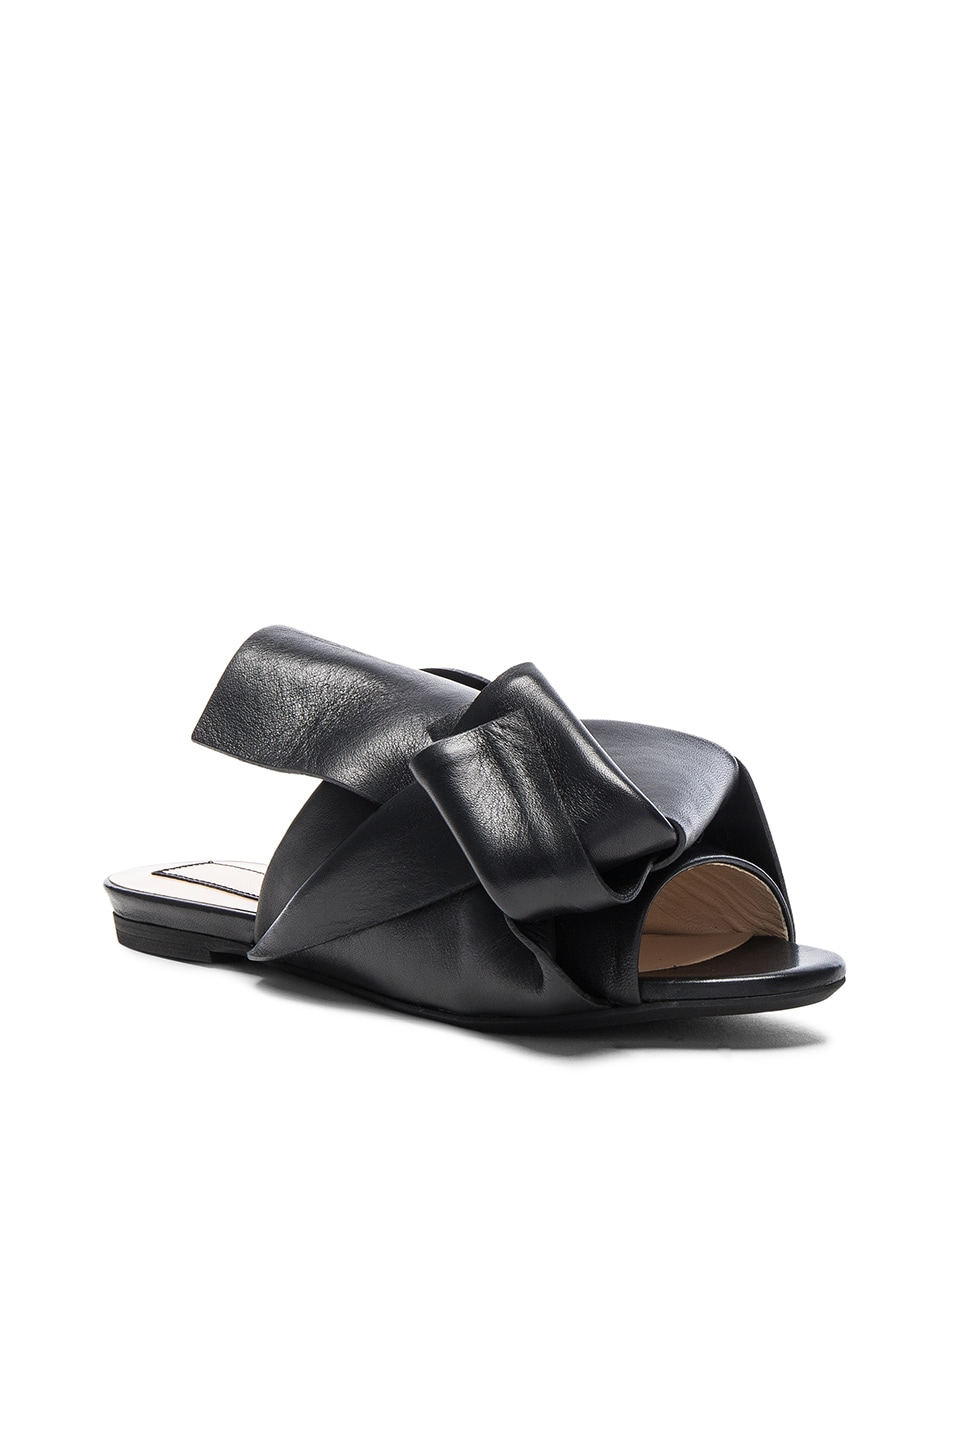 Image 2 of No. 21 Knot Front Leather Sandals in Black Leather